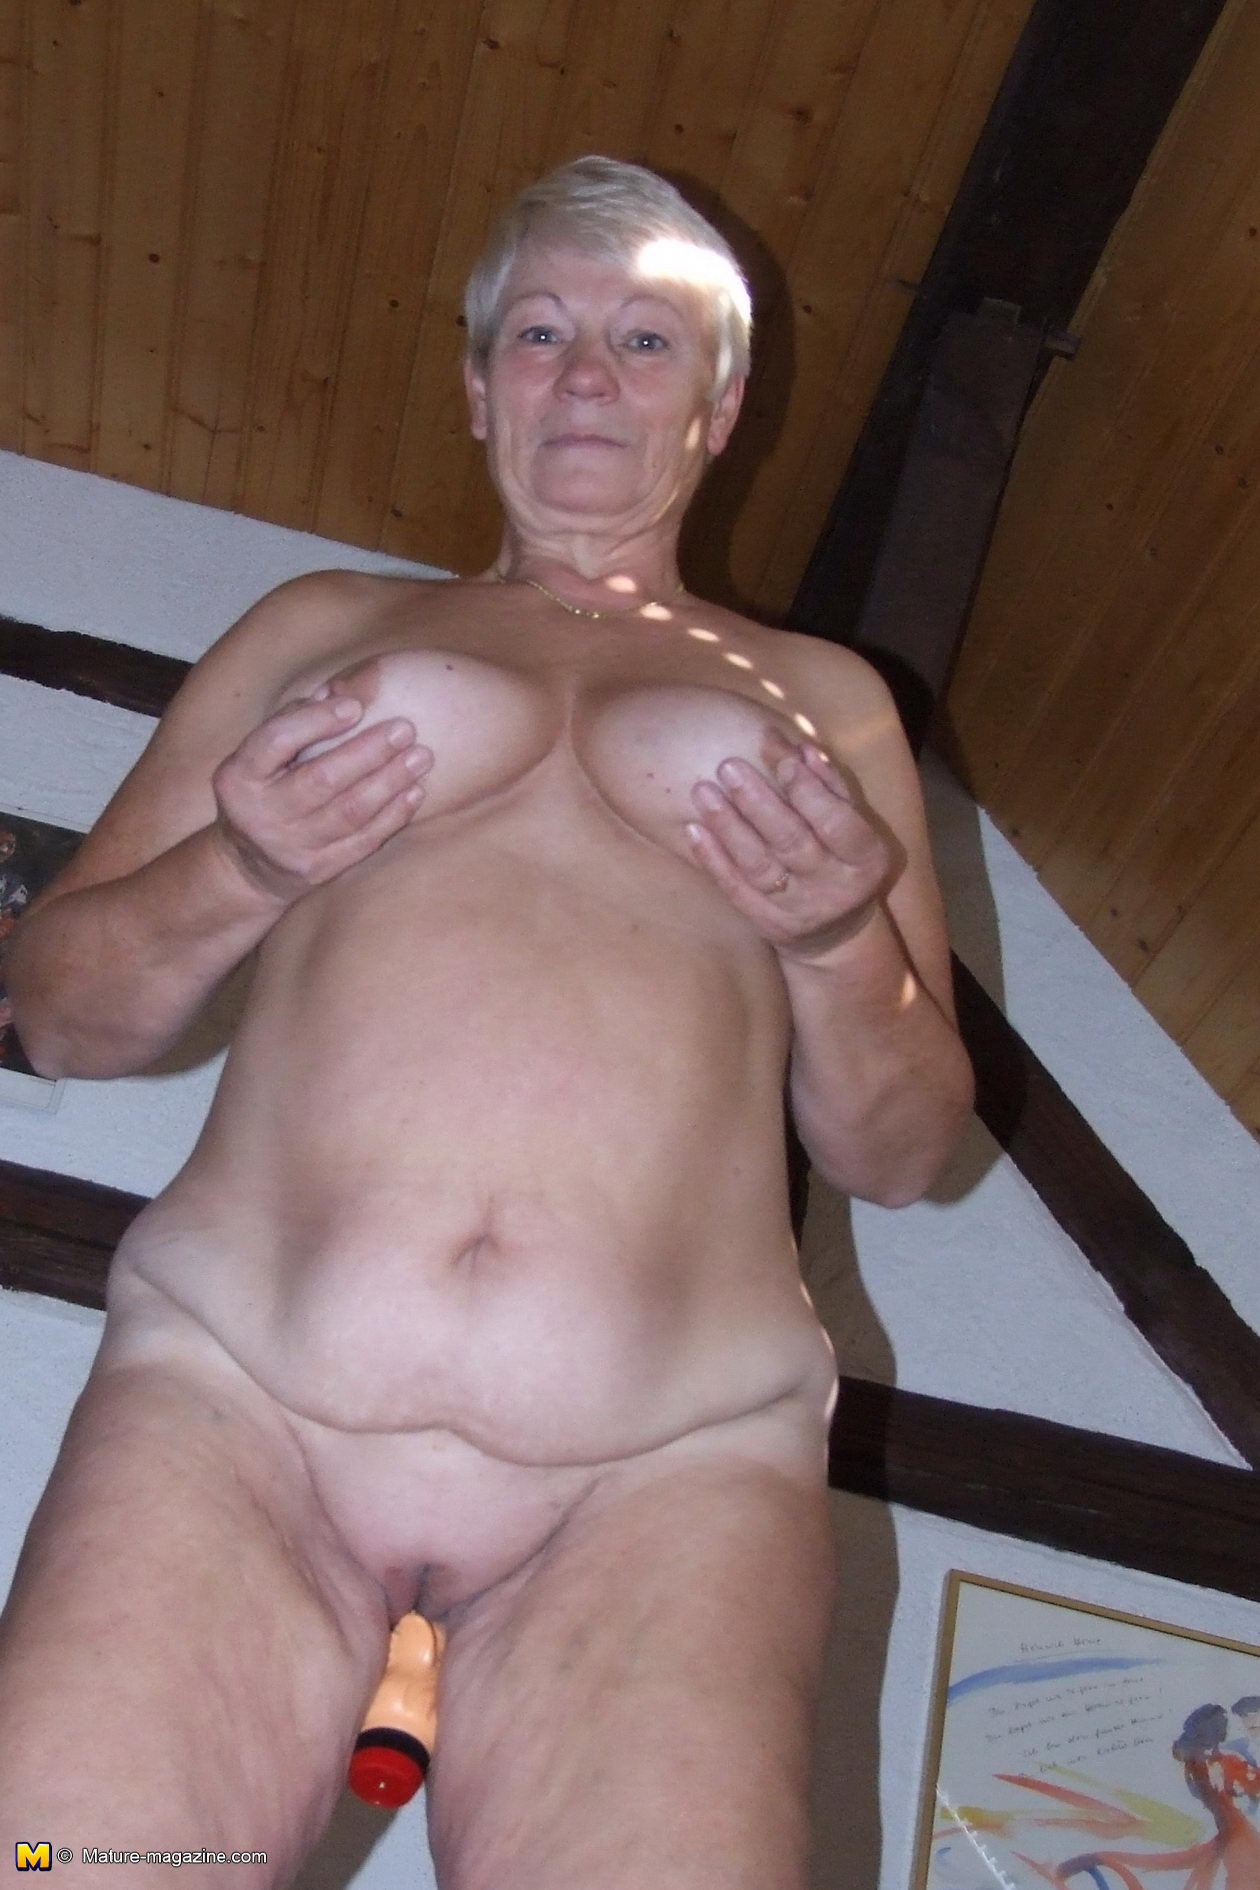 grannys shaved wet pussy - get paid to flirt!